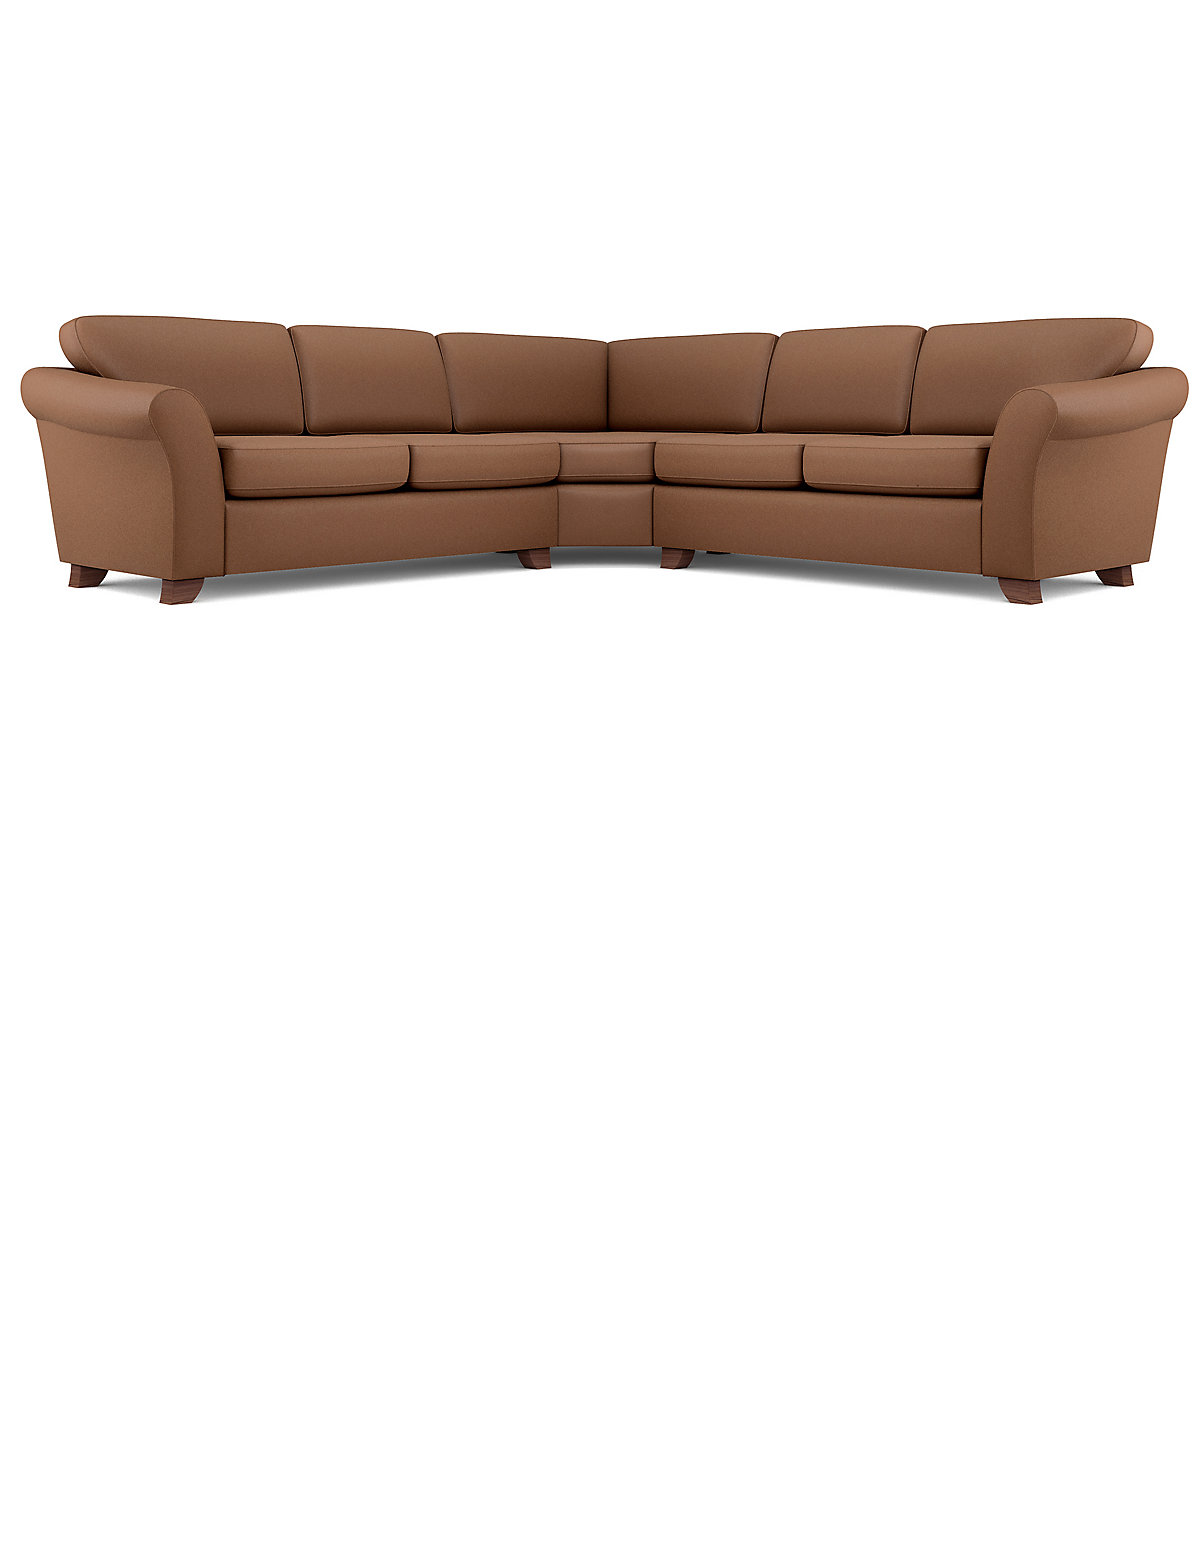 Image of Abbey Curved Corner Sofa